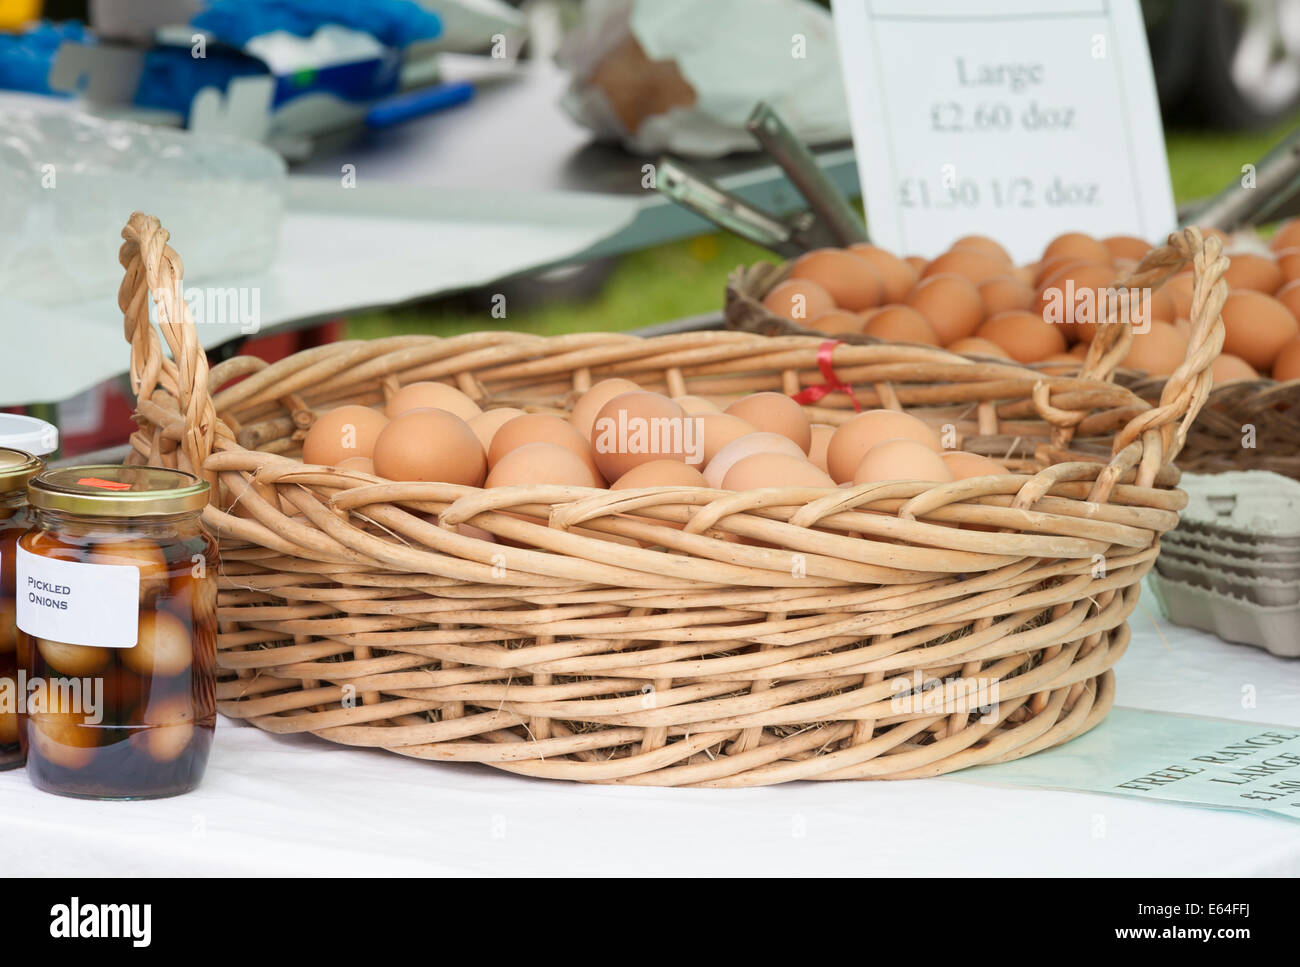 A wicker basket containing large free range hens eggs and pickles eggs for sale on a market stall - Stock Image